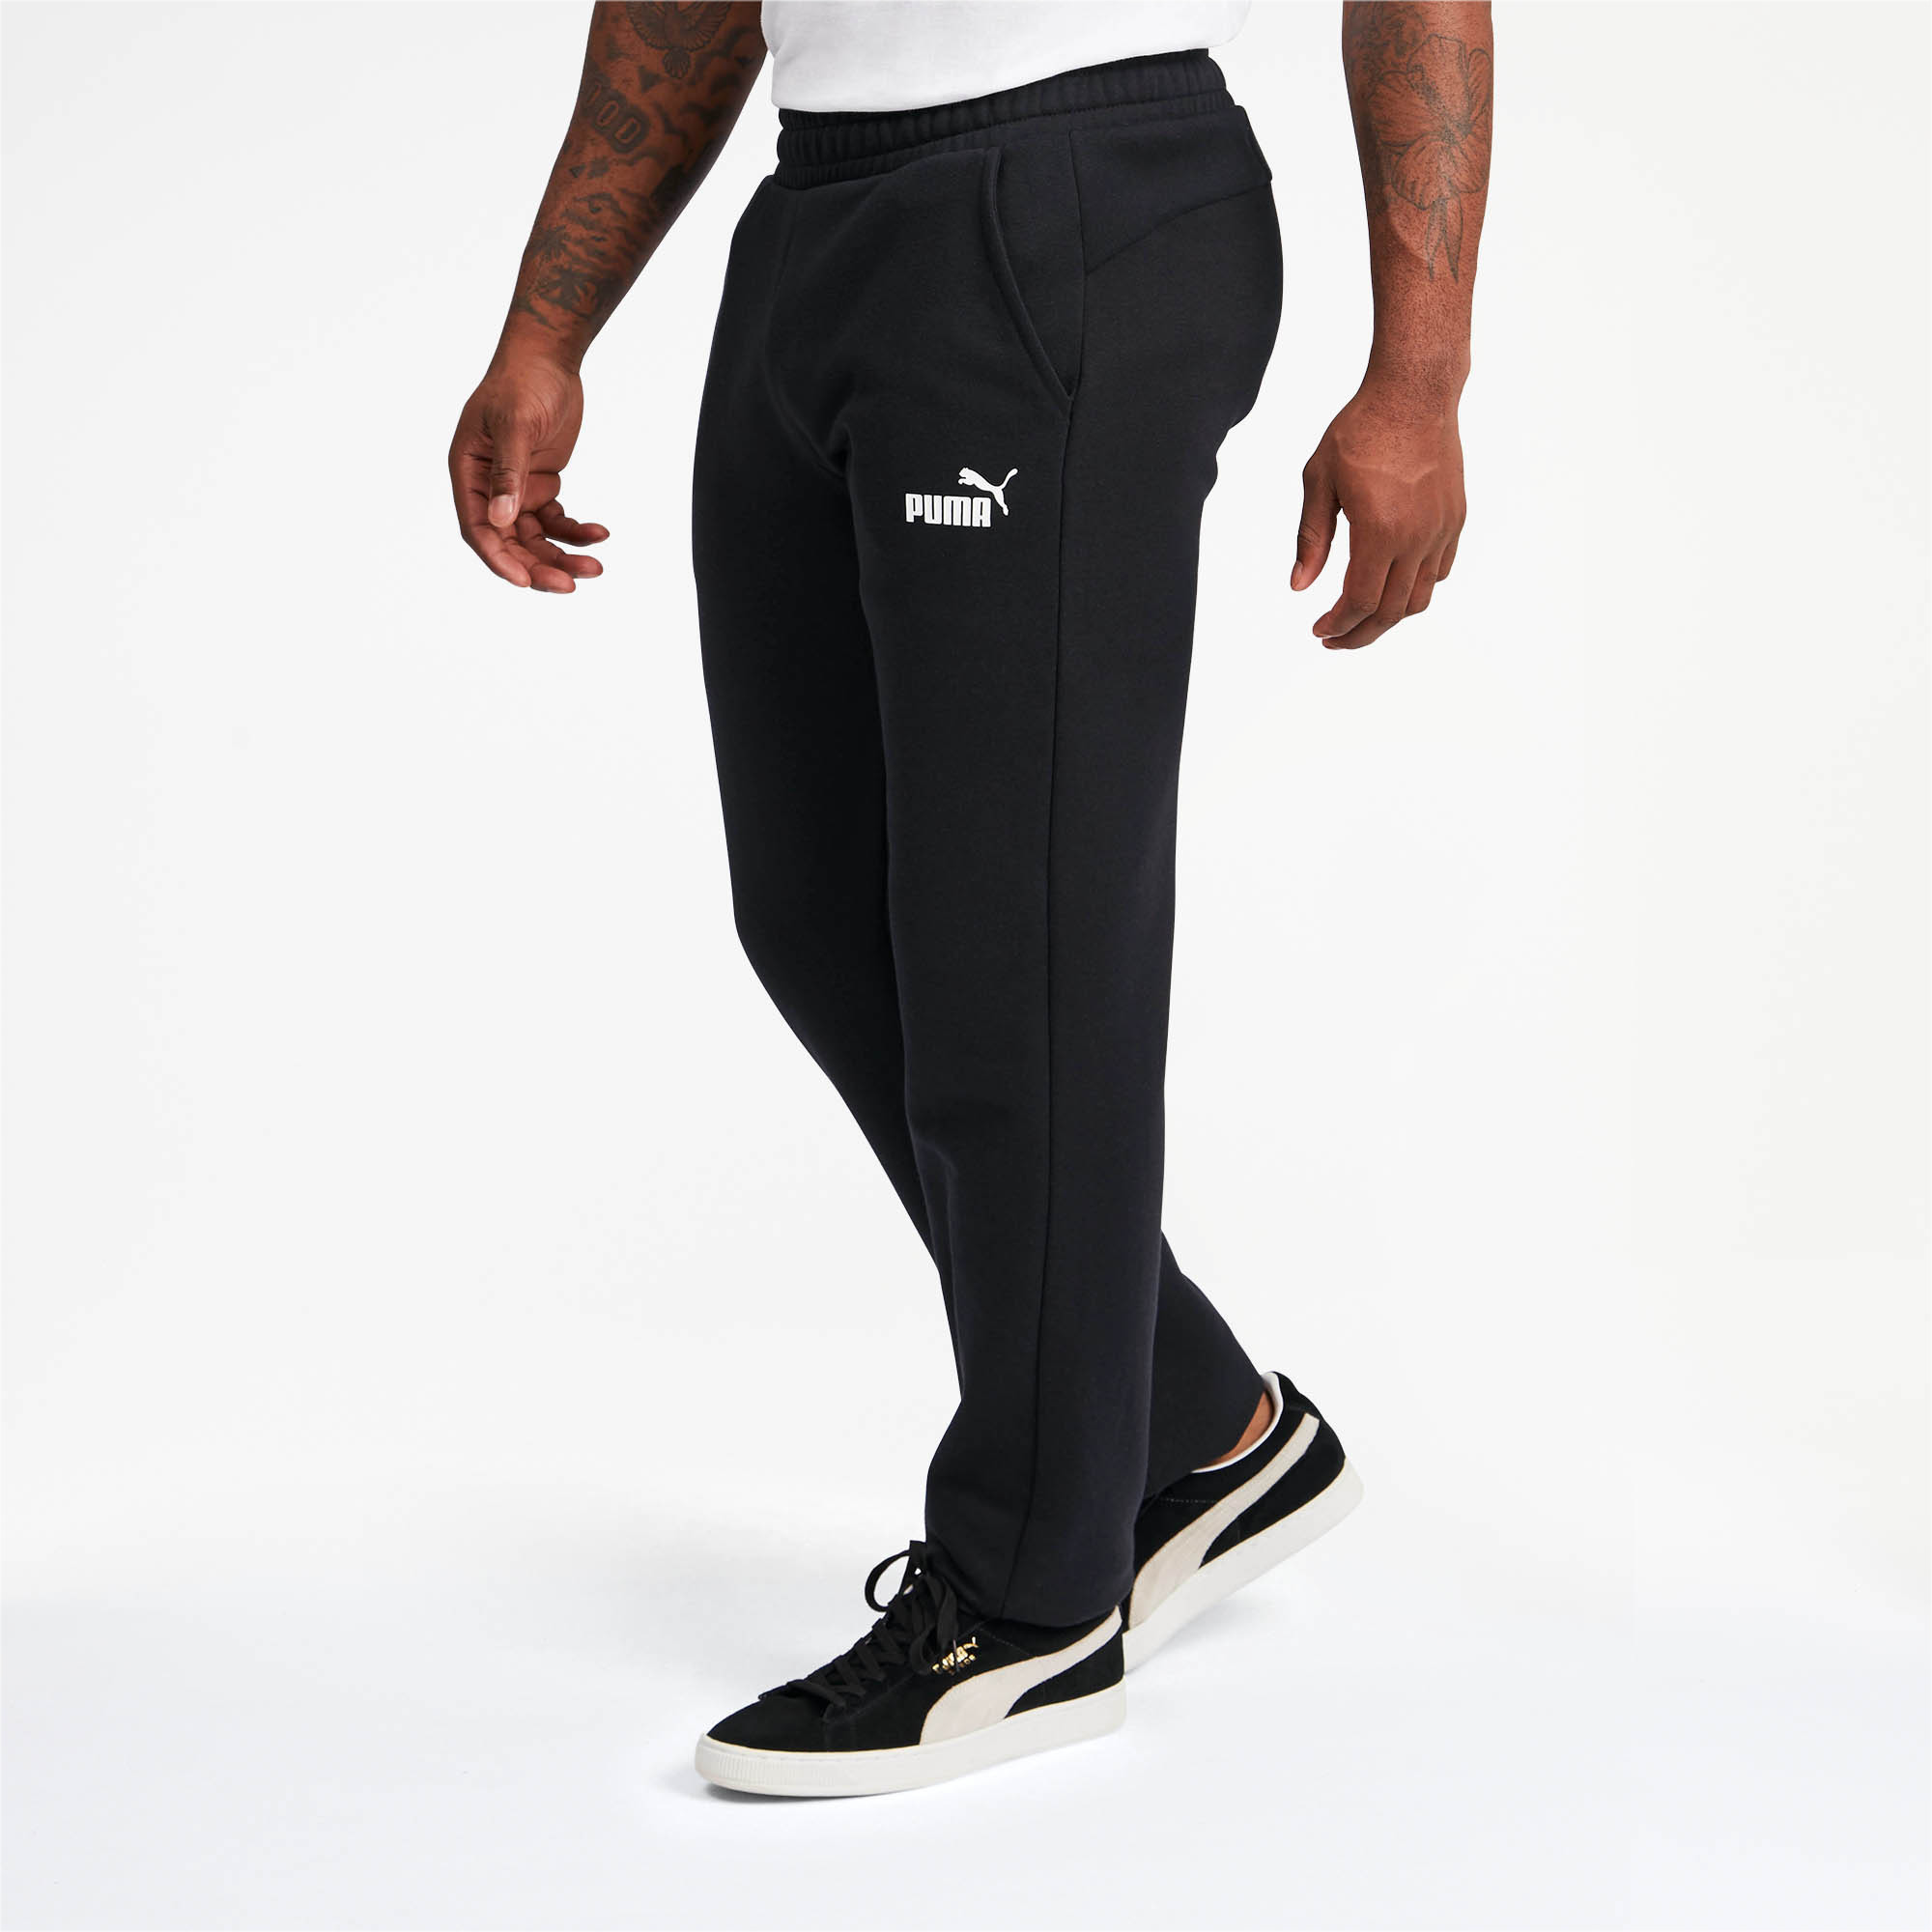 PUMA-Essentials-Men-039-s-Fleece-Pants-Men-Knitted-Pants-Basics thumbnail 14